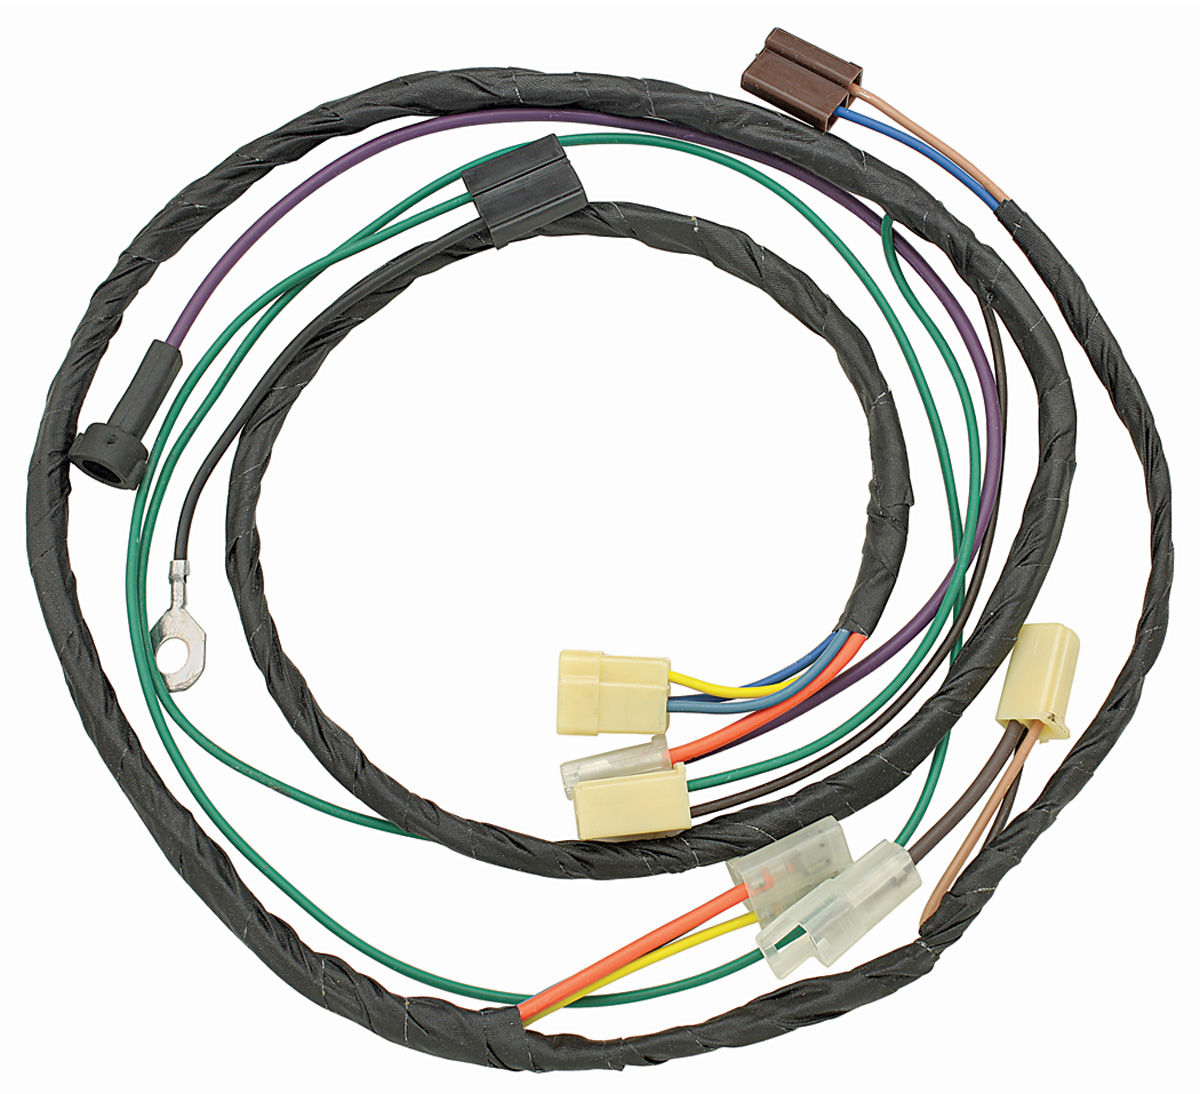 m&h 1971 cutlass/442 air conditioning harness 6-cyl. @ opgi.com 1971 oldsmobile 442 wiring harness